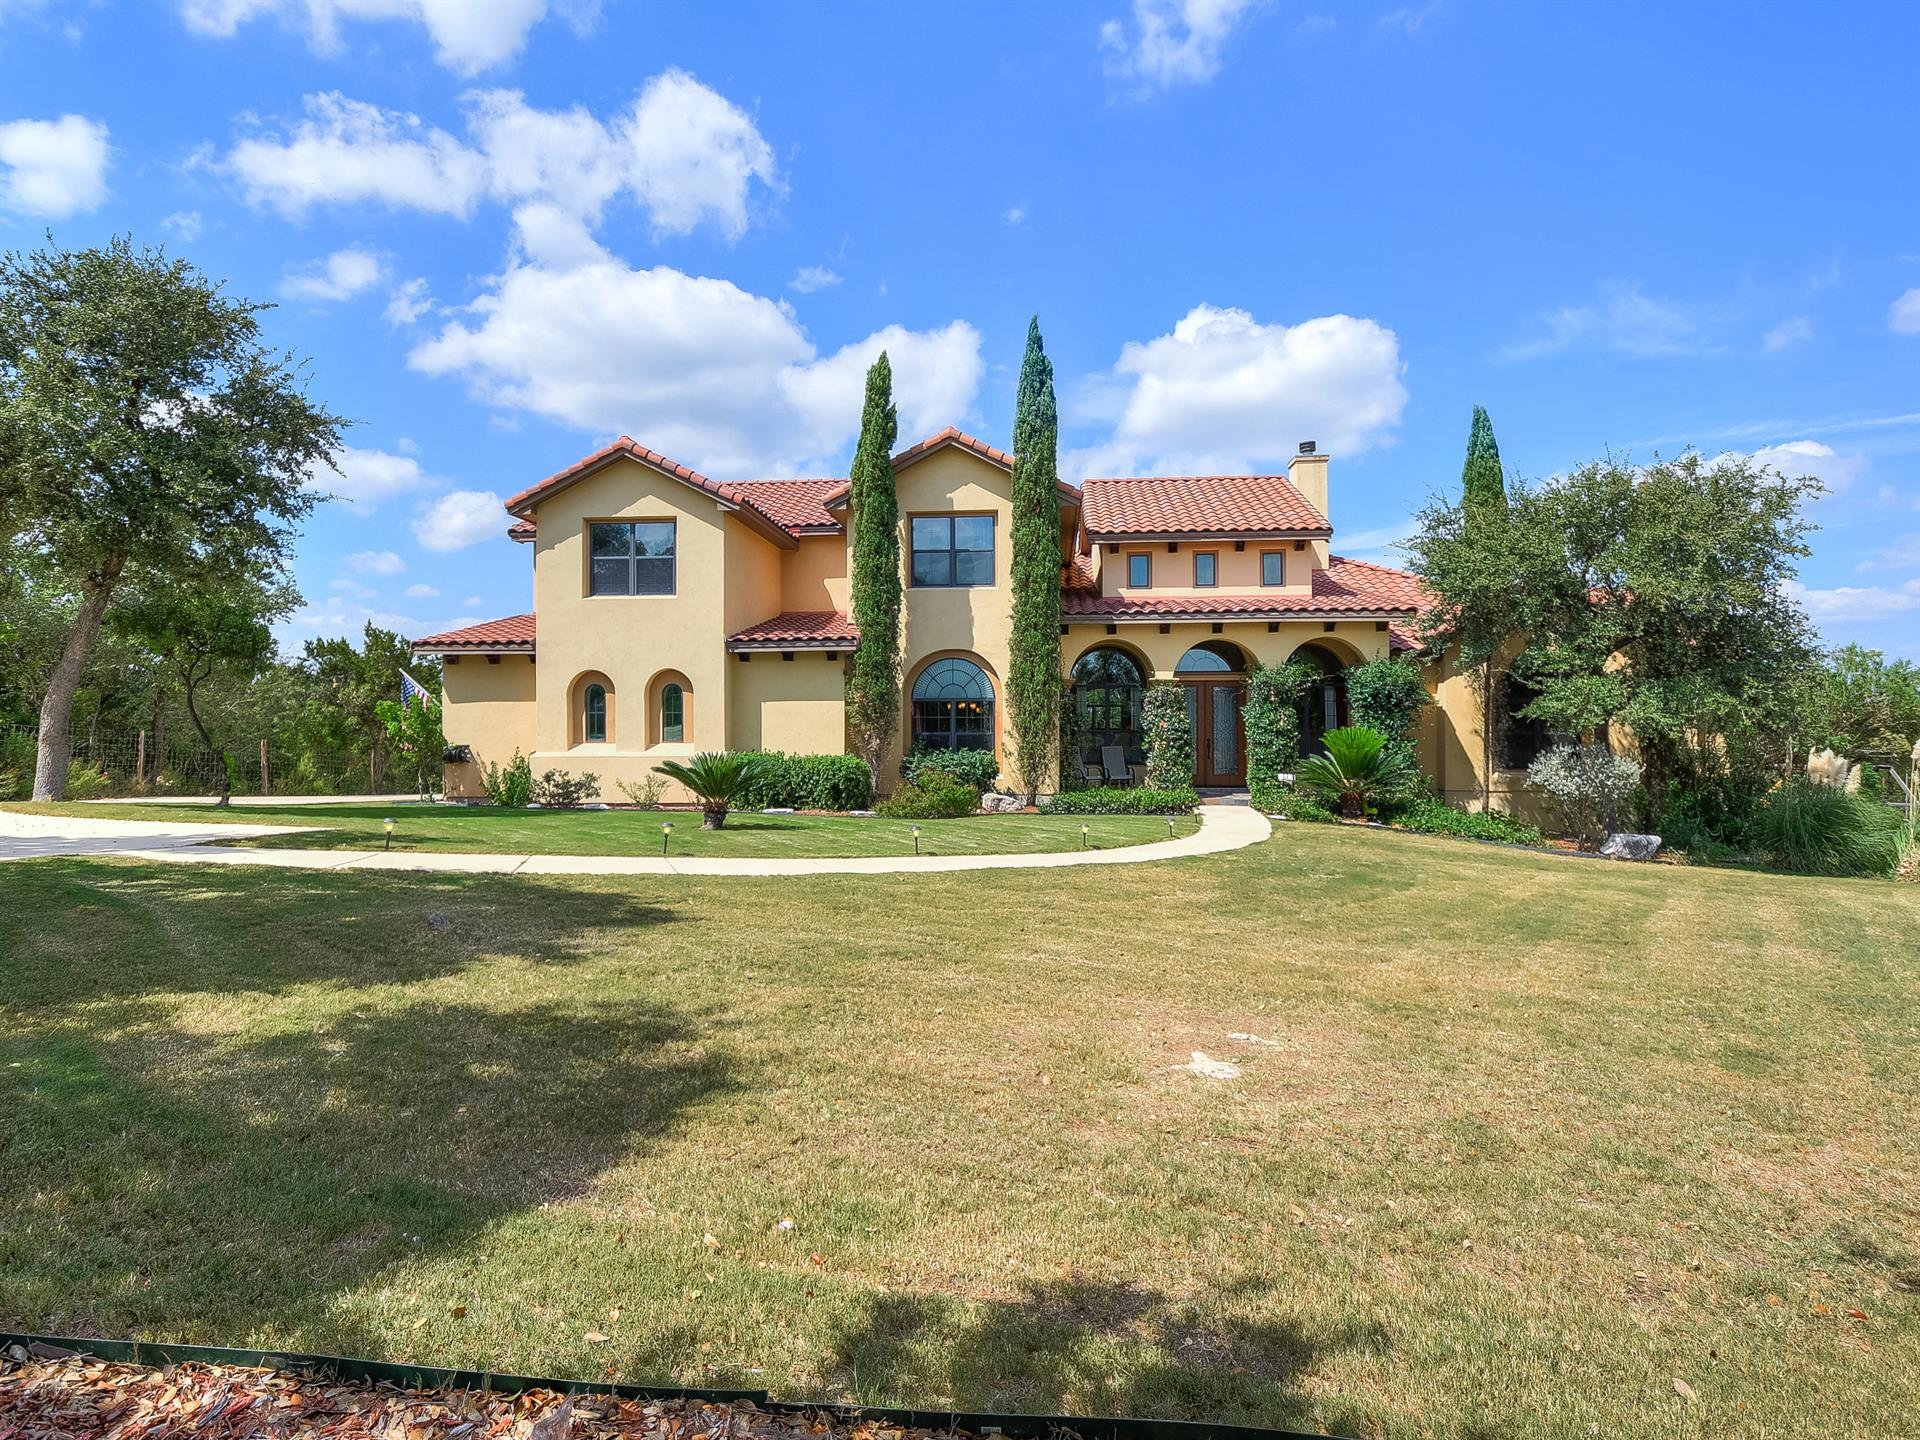 Residential for Sale at 14478 Iron Horse Way 14478 Iron Horse Way Helotes, Texas 78023 United States